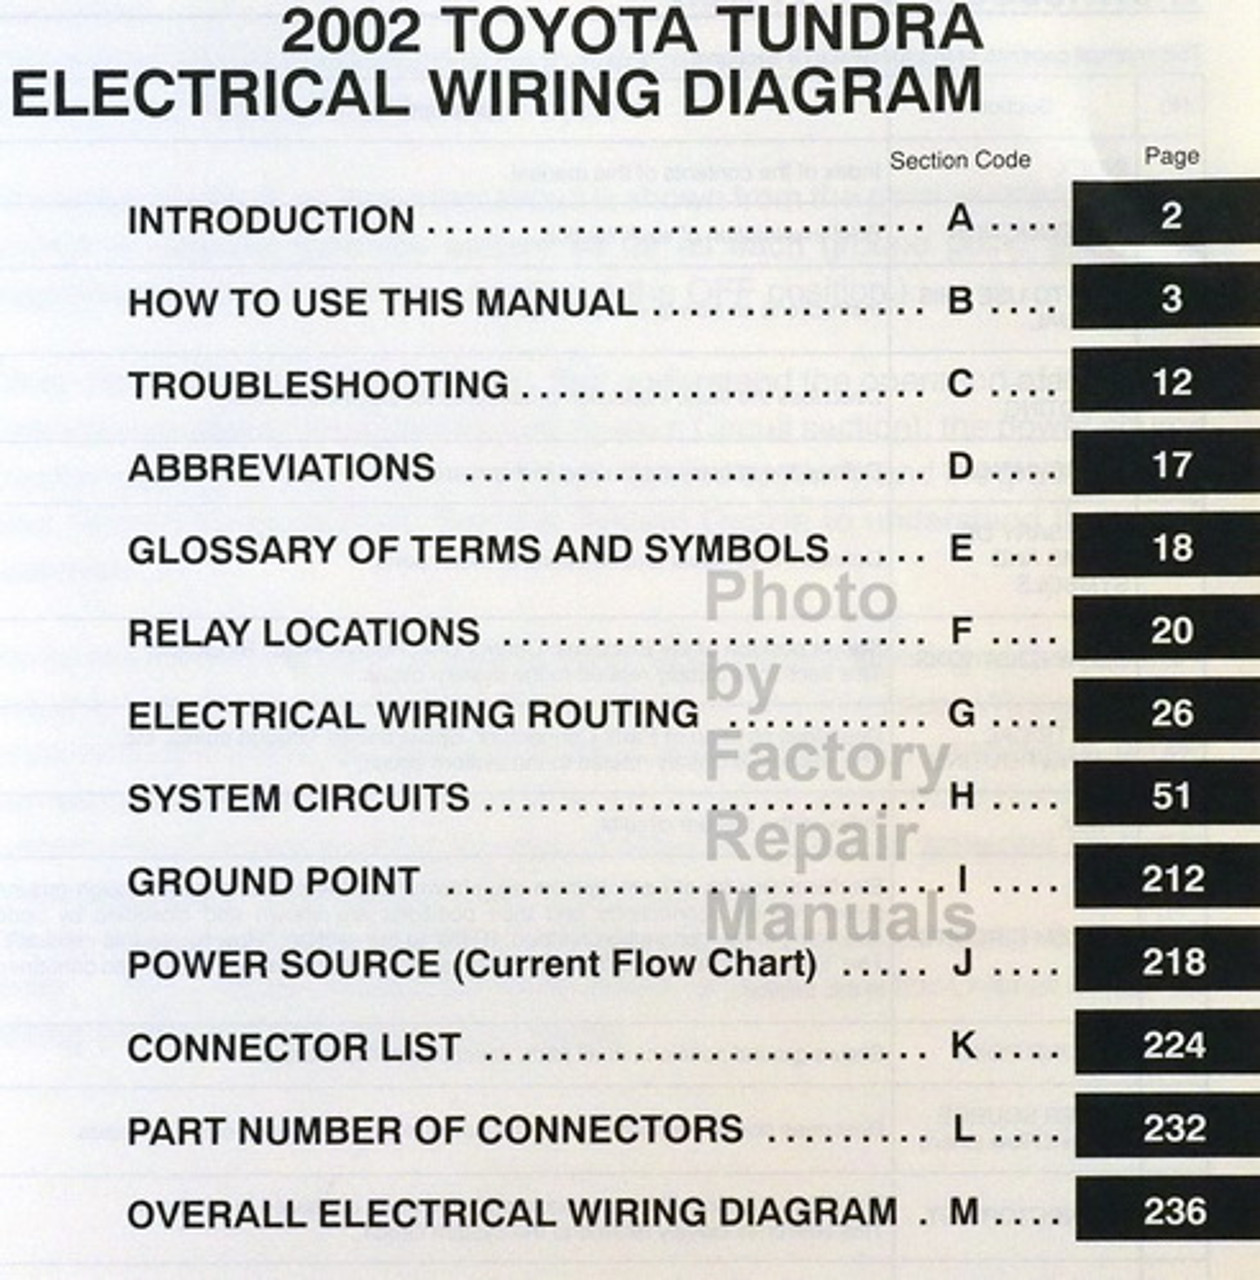 2002 Toyota Tundra Electrical Wiring Diagrams Original Factory Manual -  Factory Repair ManualsFactory Repair Manuals